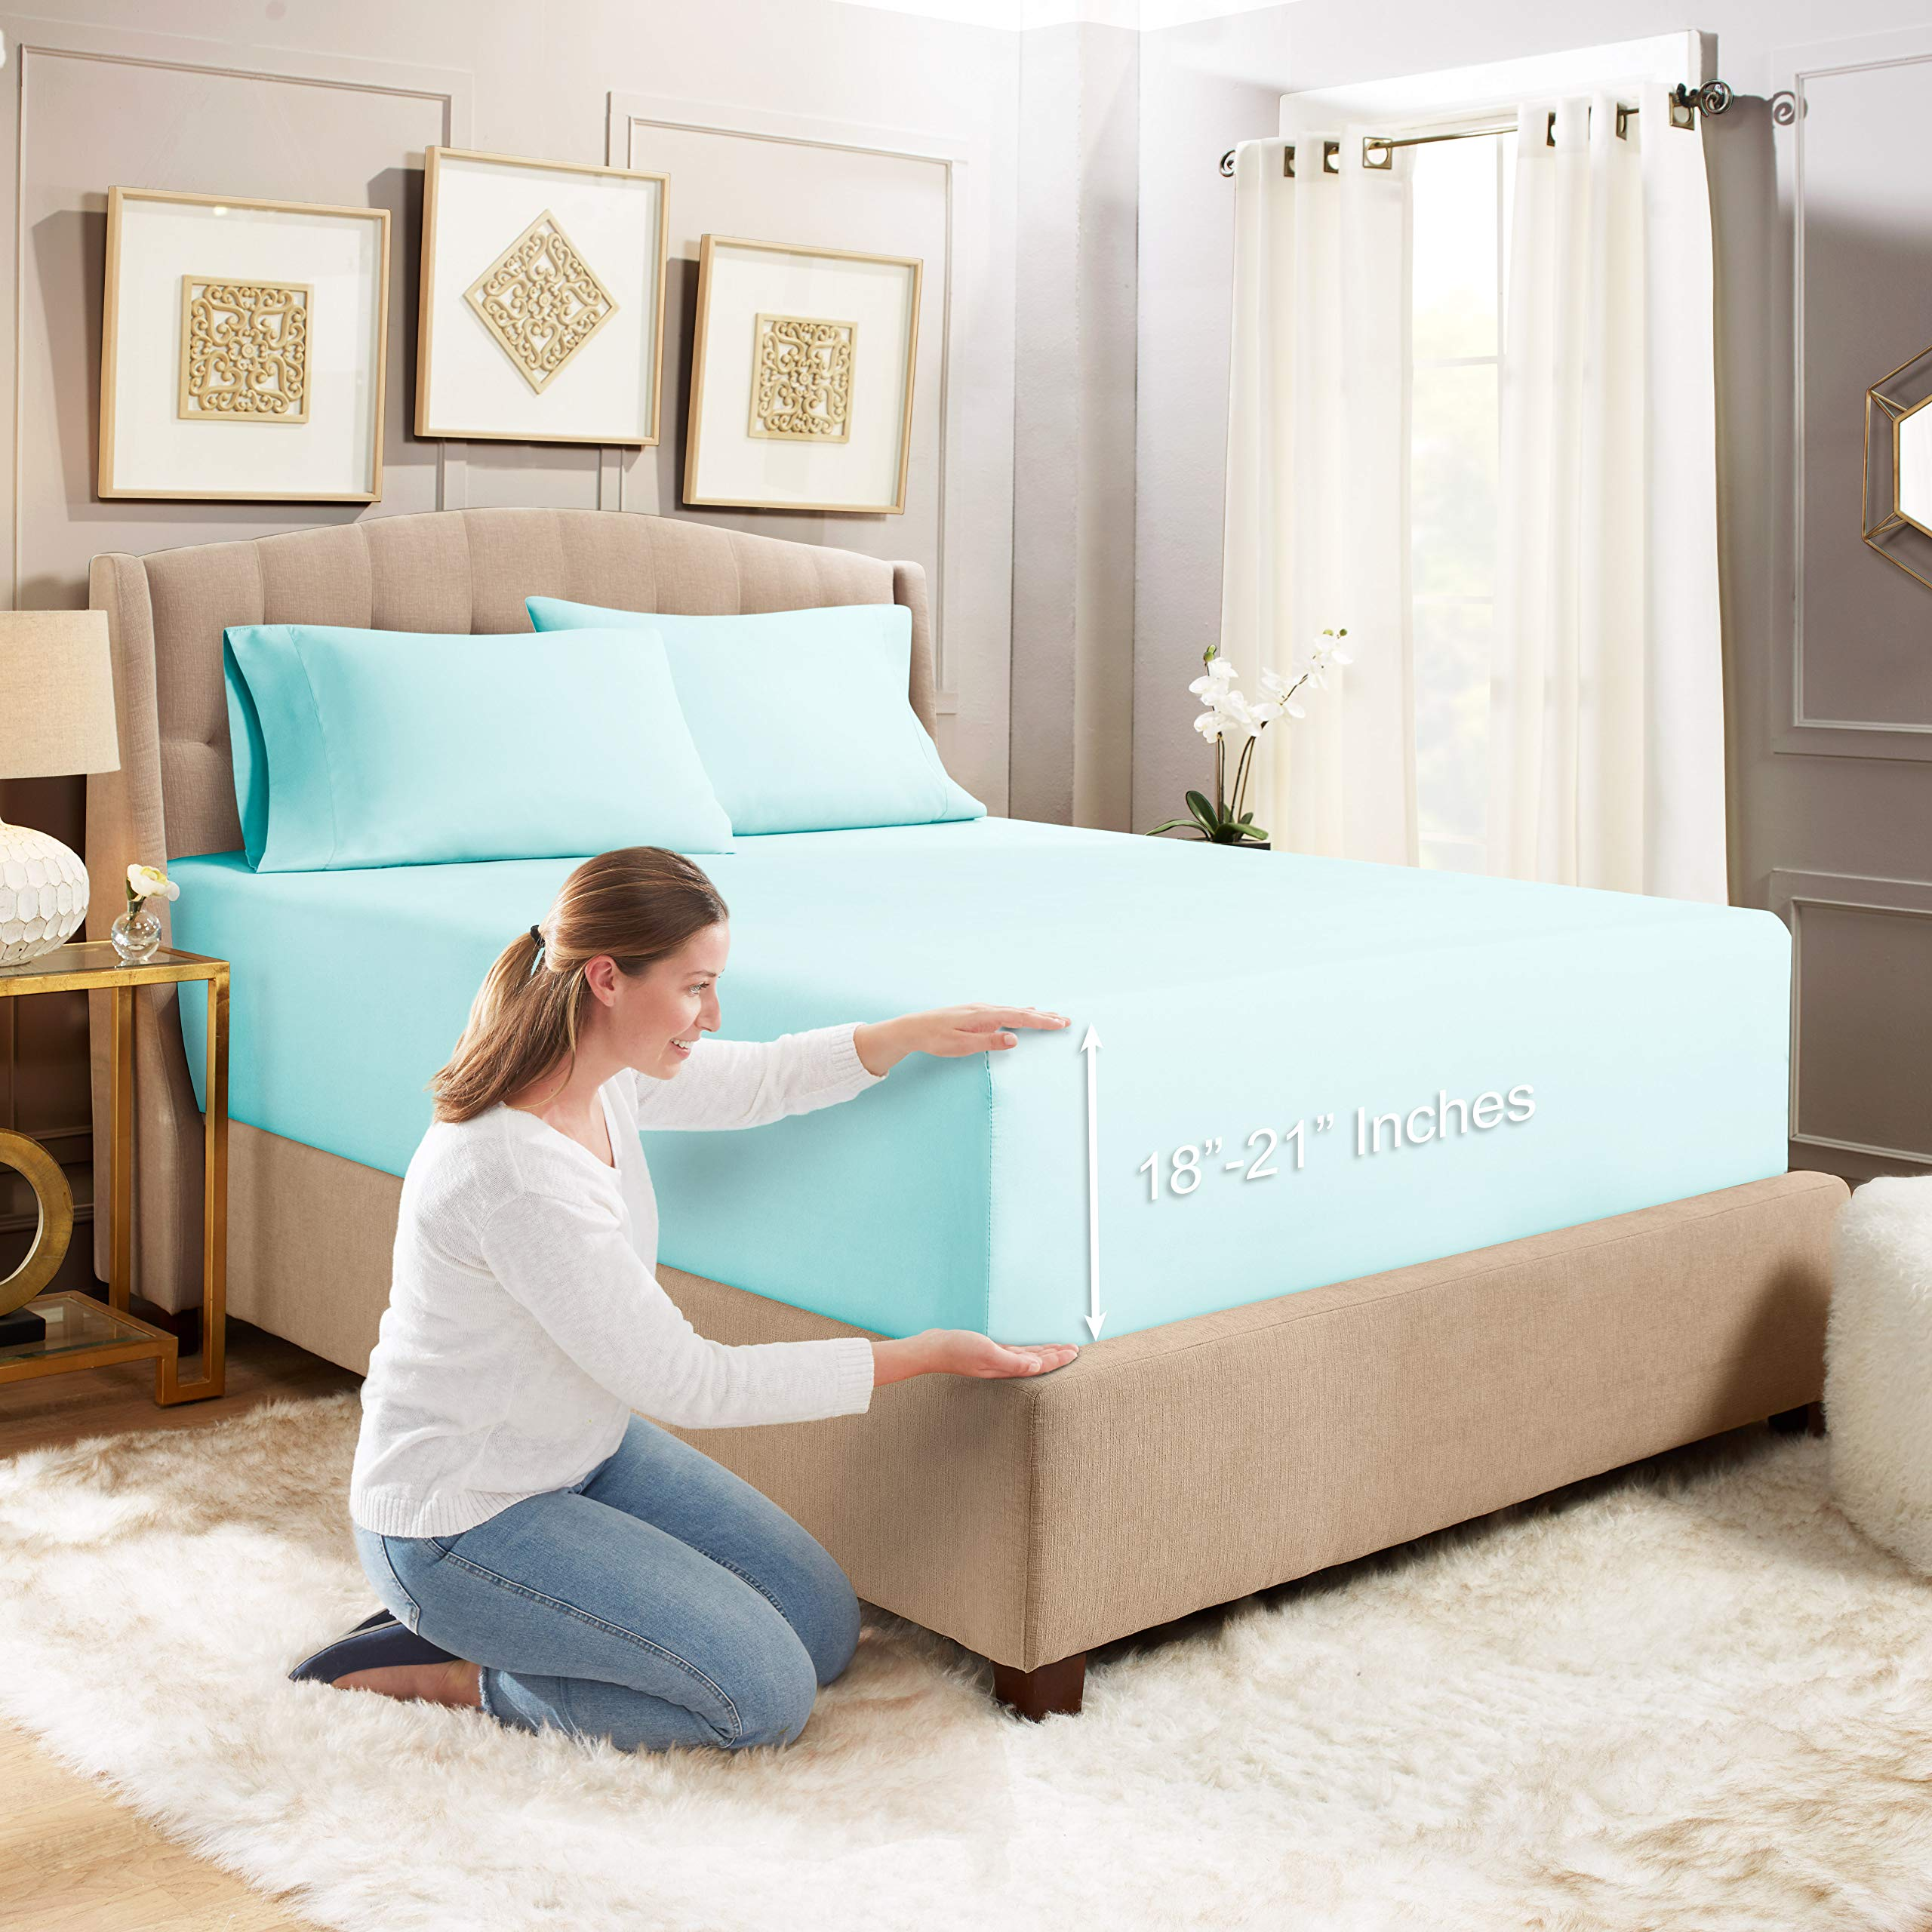 """Empyrean Bedding 3 Set 21"""" Extra Deep Pocket Fitted Sheet with Corner Straps–Double Brushed Microfiber Sheet and Pillowcase Set - 110 GSM – Hypoallergenic Wrinkle Free Sheet, Baby Blue - Queen"""